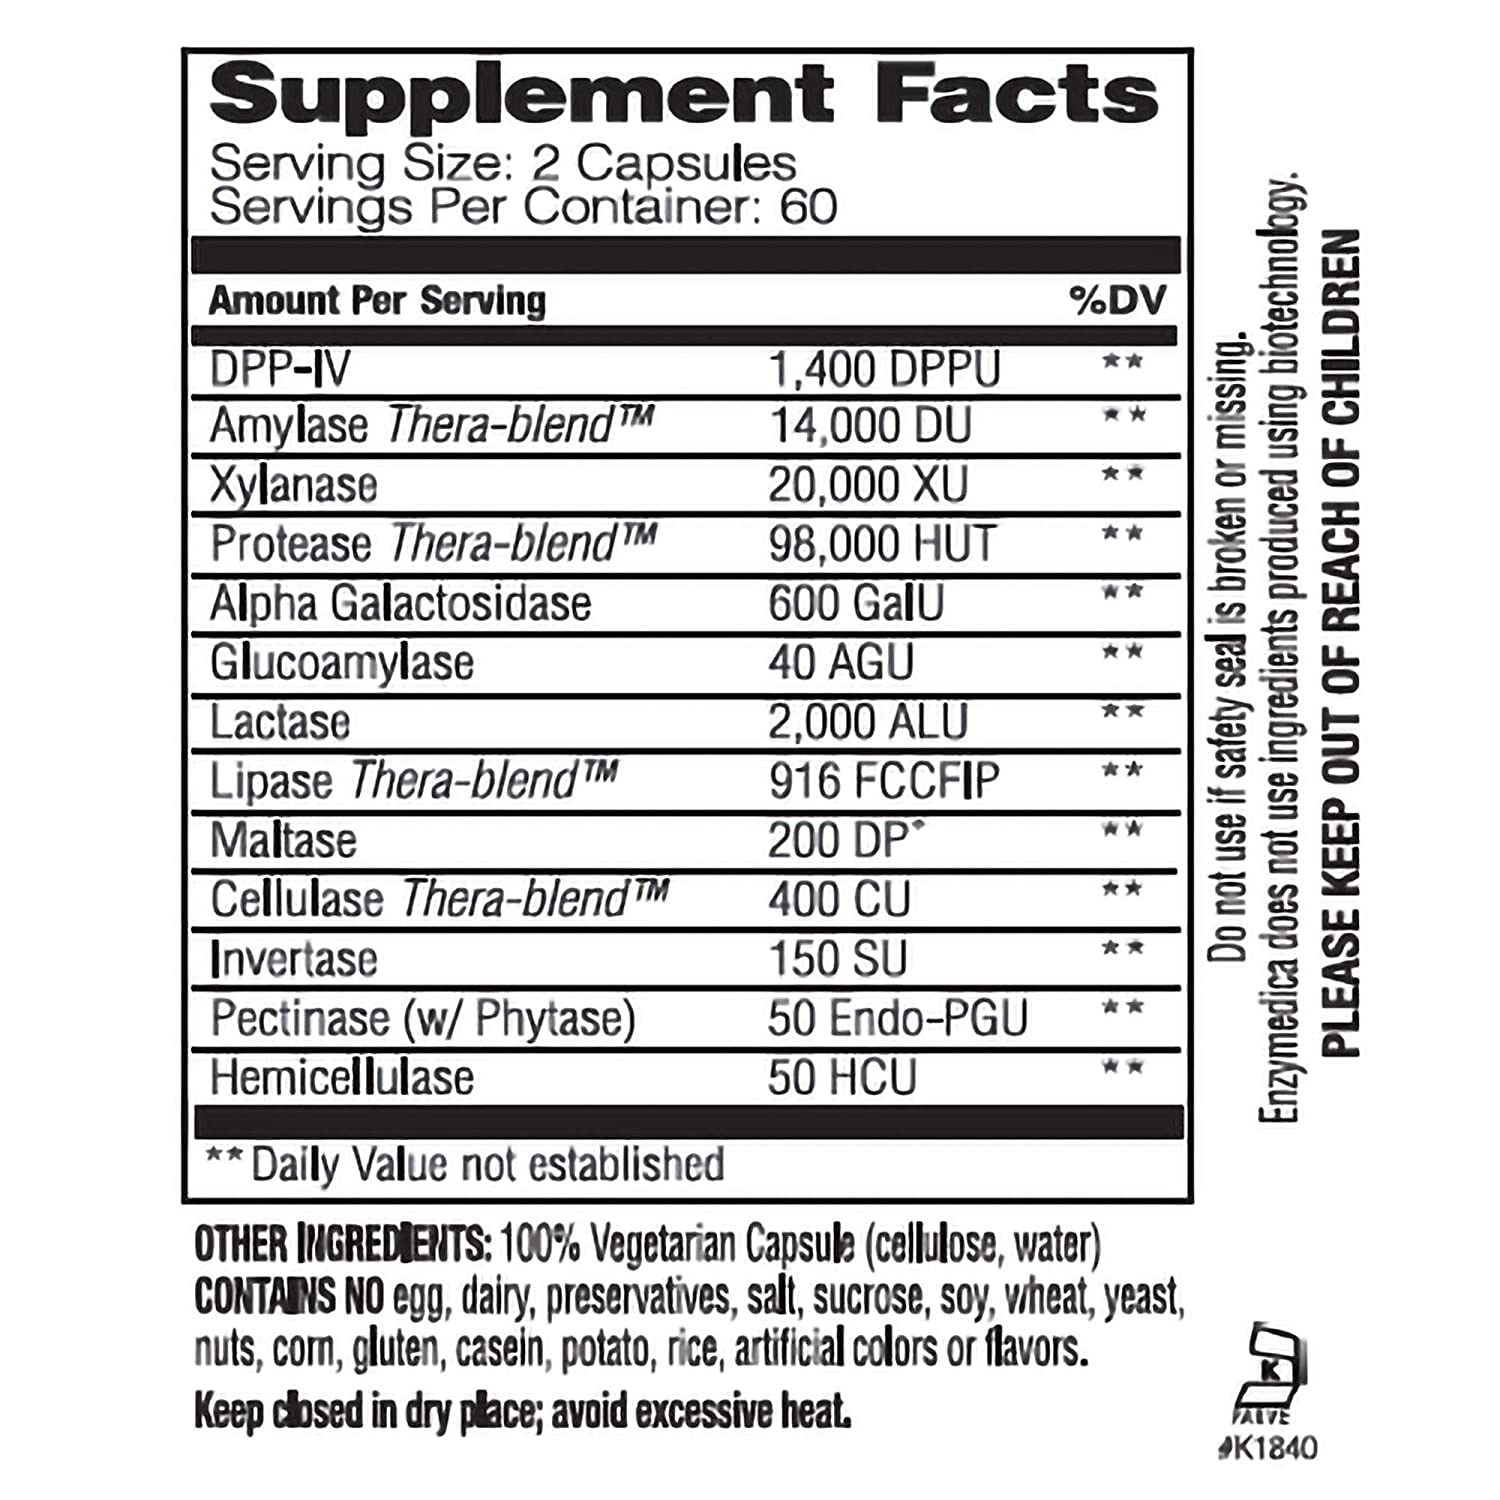 Enzymedica - Digest Spectrum, Multiple Food Intolerance Formula, 120 Capsules by Enzymedica